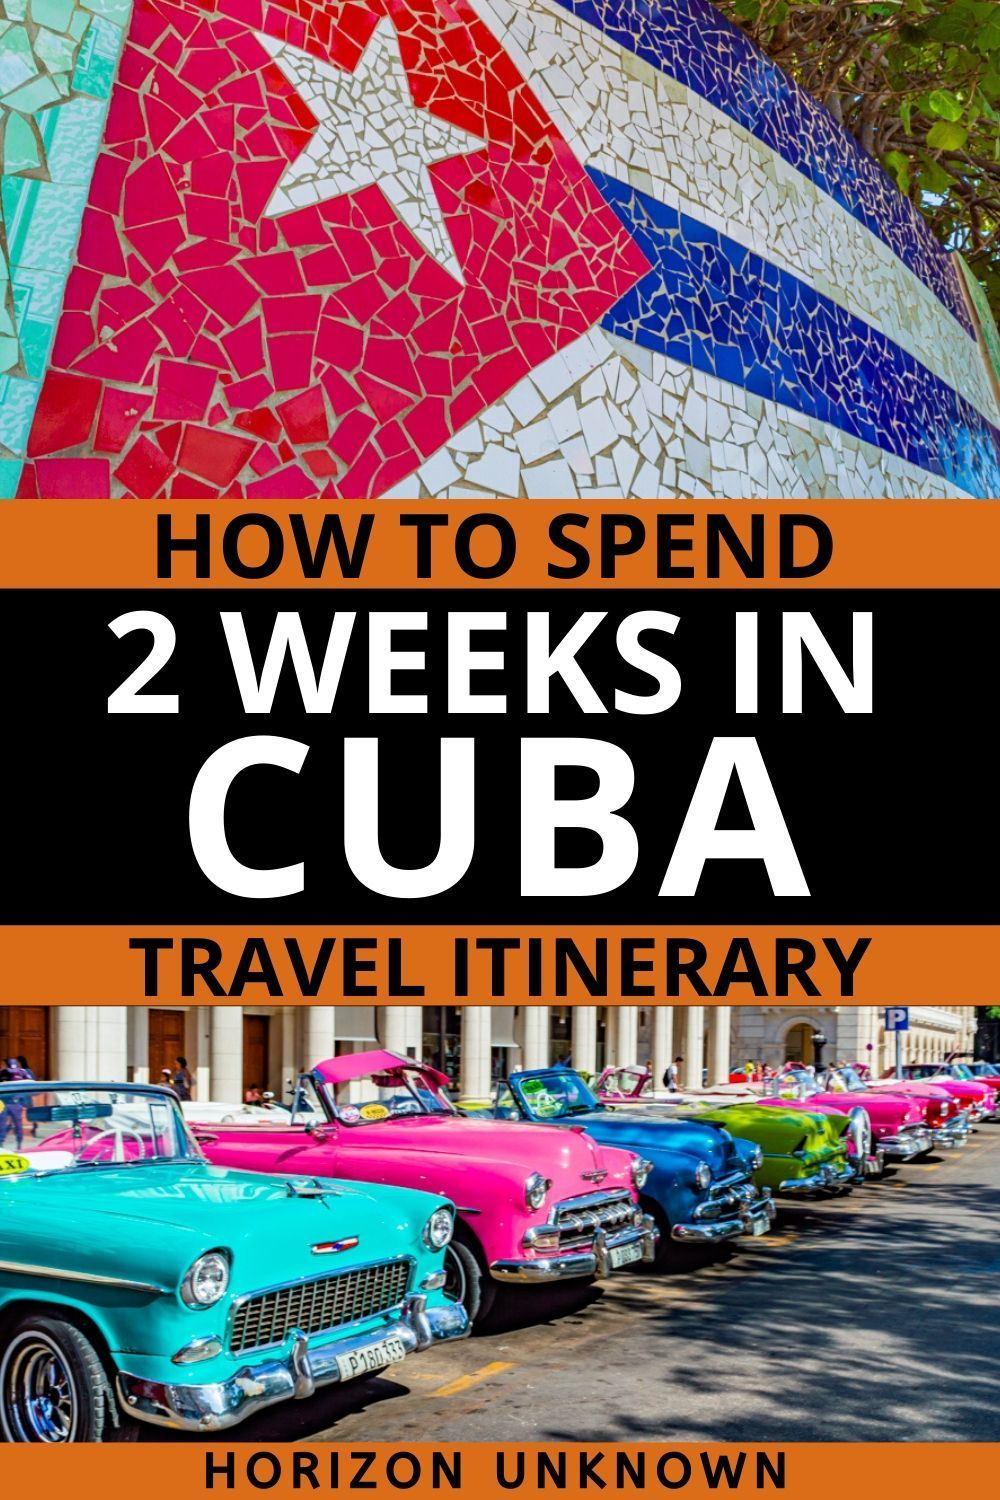 Want to know what to do in Cuba with 2 weeks? Well, you're in the right place! . From hiking Cuba, diving the Bay of Pigs, great food and nightlife - even learn how to salsa in Cuba! . Havana to Vinales to Trinidad to Playa Giron - Plus plenty more!  2 Week Cuba Itinerary | Travel Cuba  #Cuba #TravelCuba #Havana #Vinales #2WeeksCuba #CubaItinerary #Traveler #explore #wanderlust